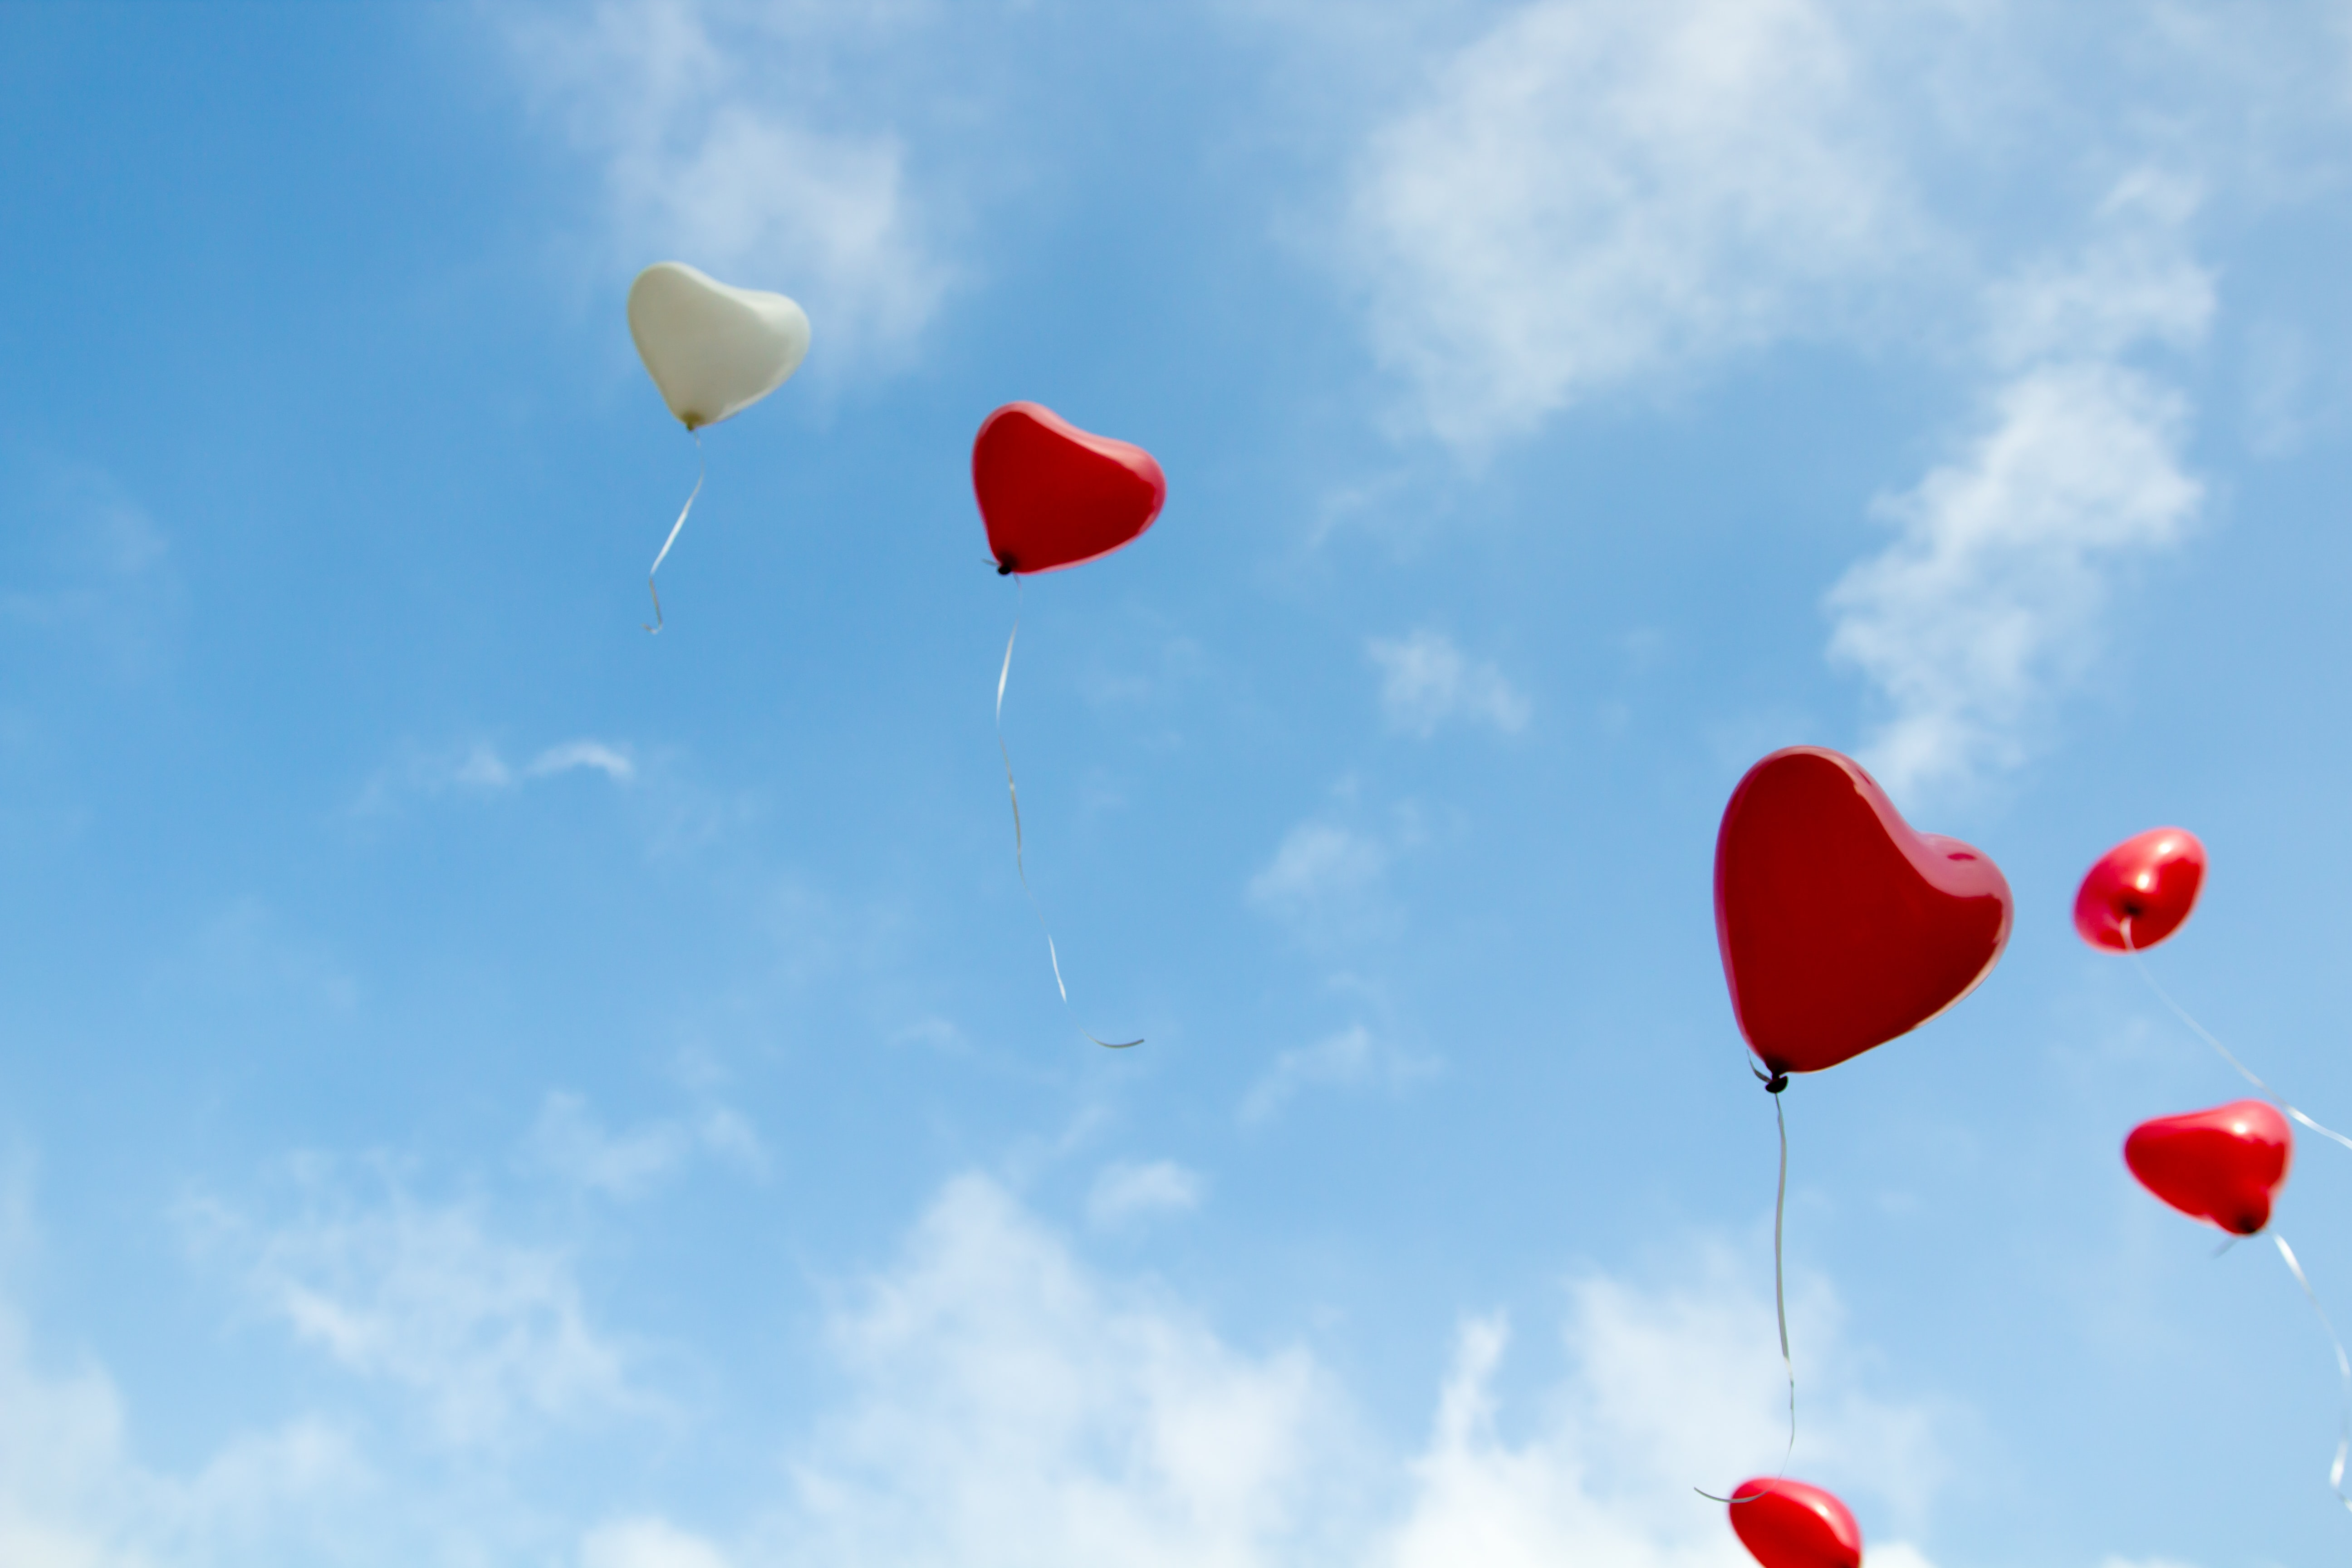 Heart-shaped balloons float across a blue sky with few clouds.